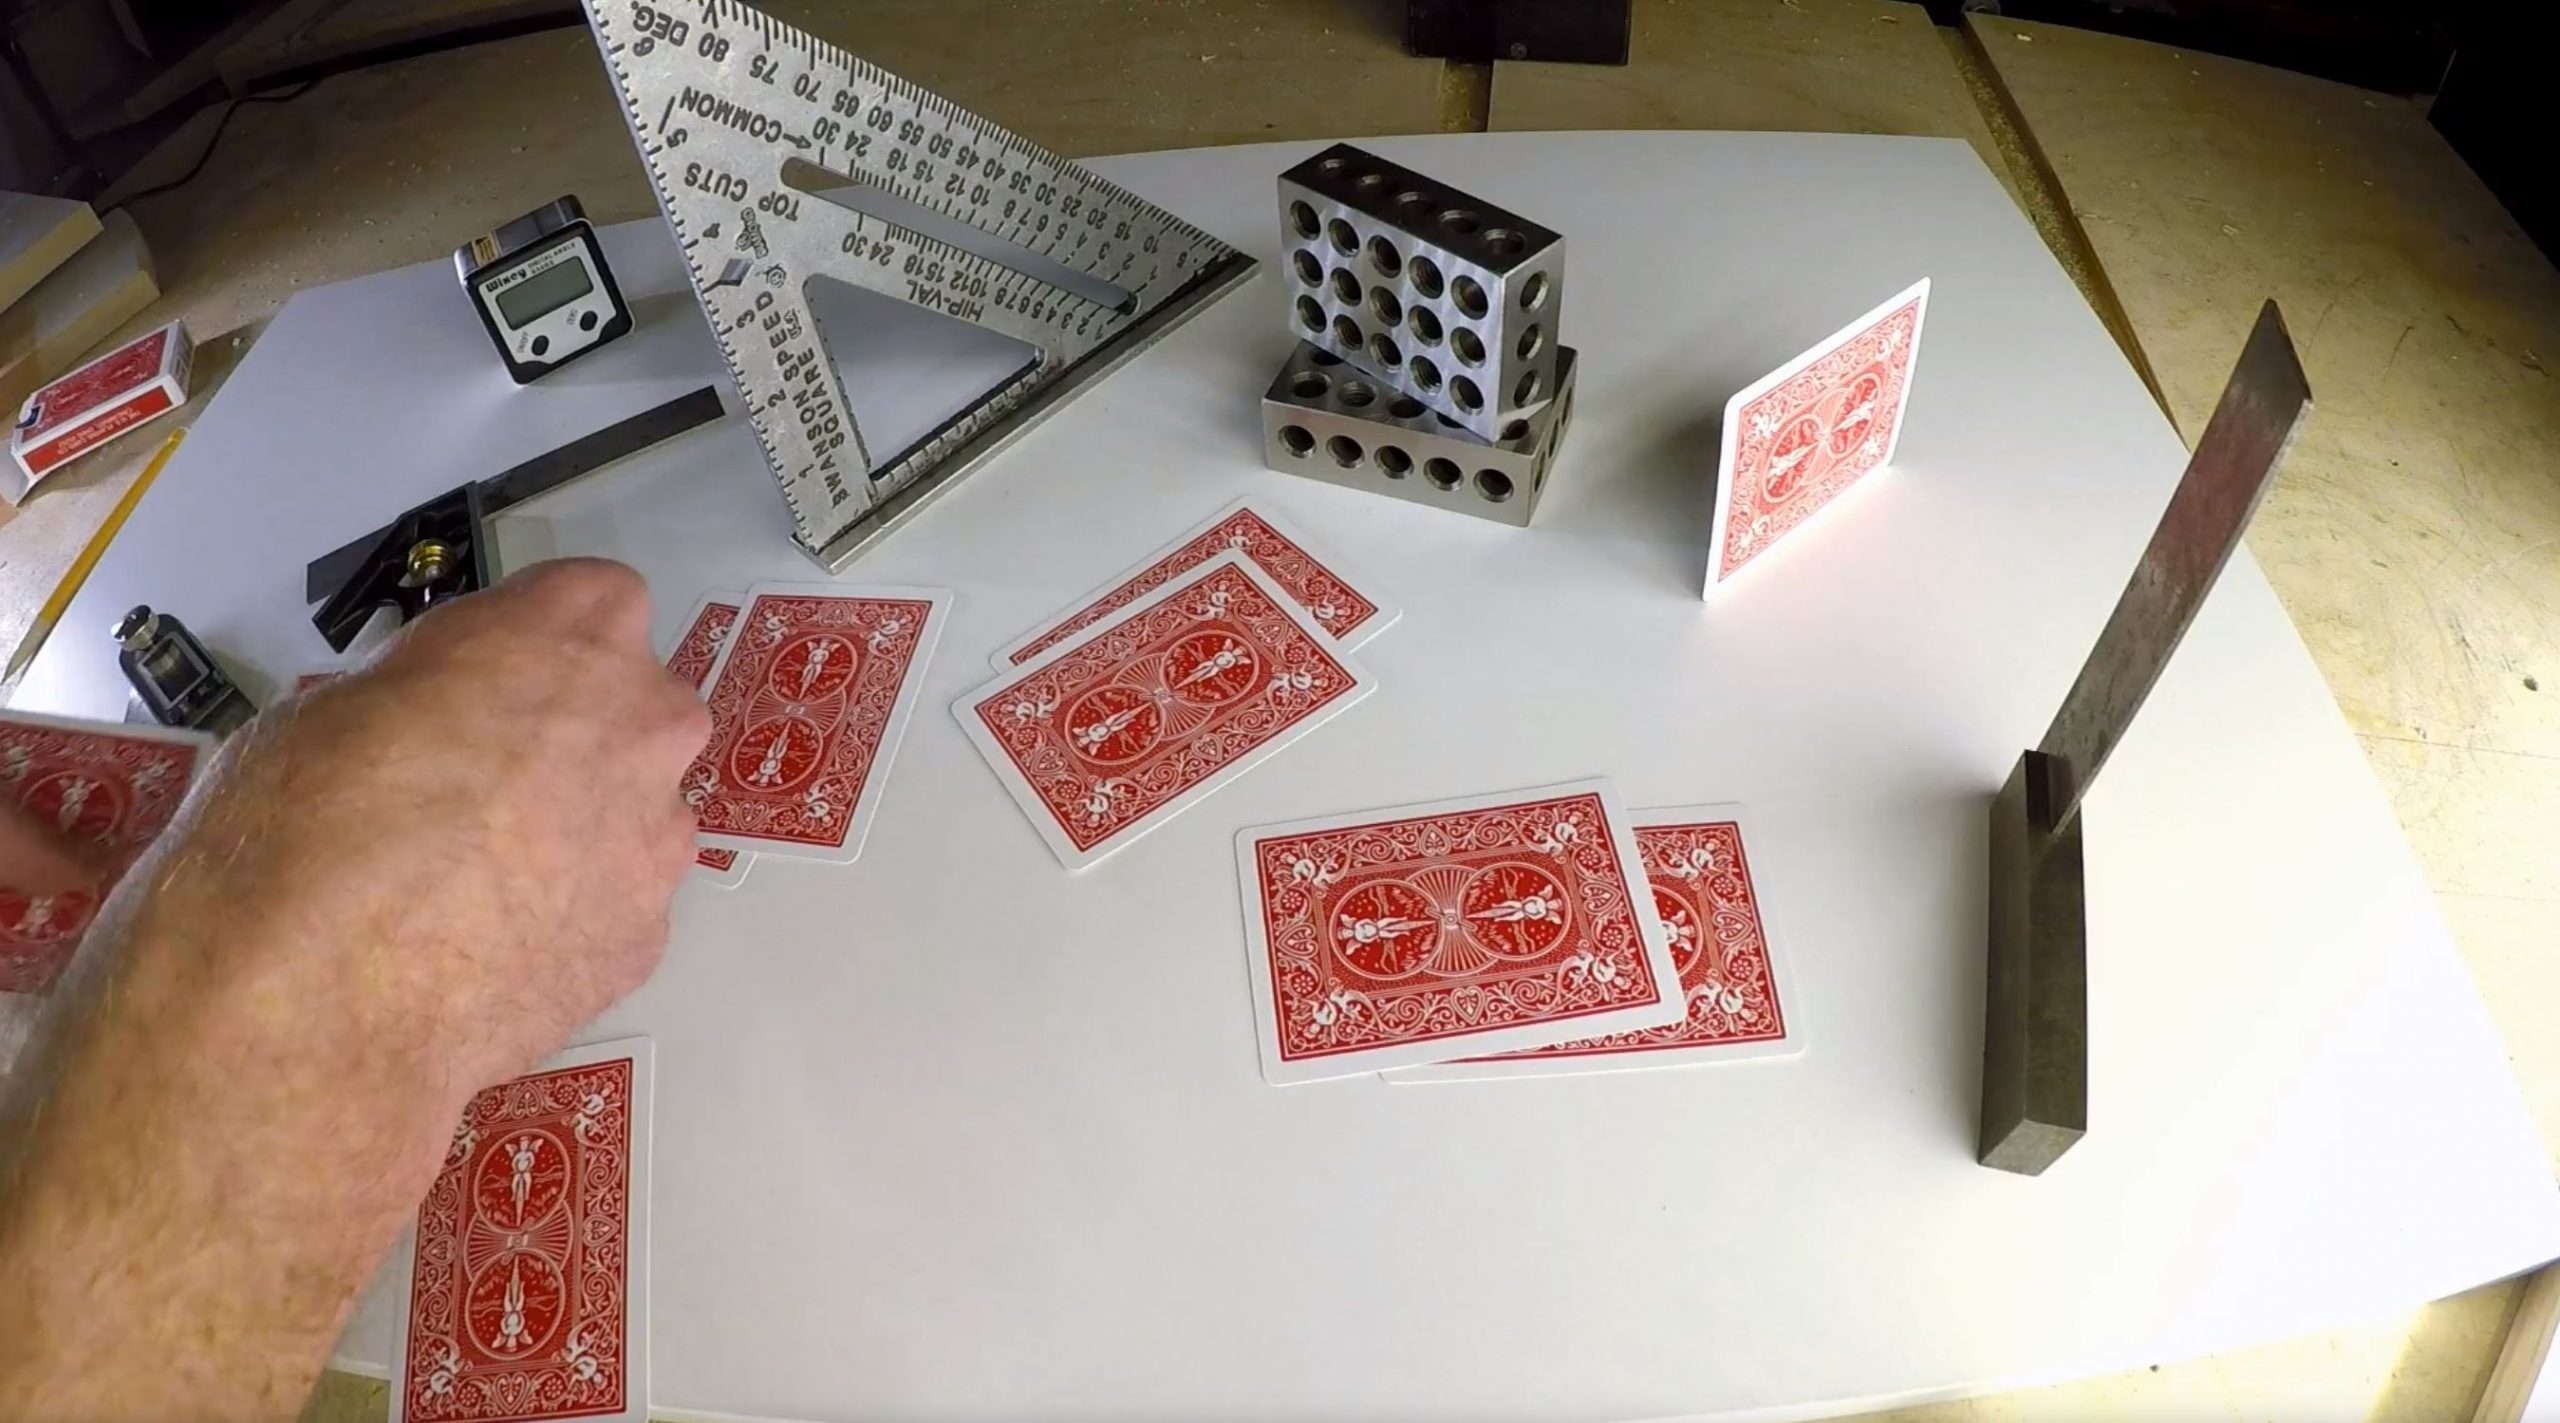 2019-02-05 21_03_06-Deck of Cards pt 1_ Squares - YouTube